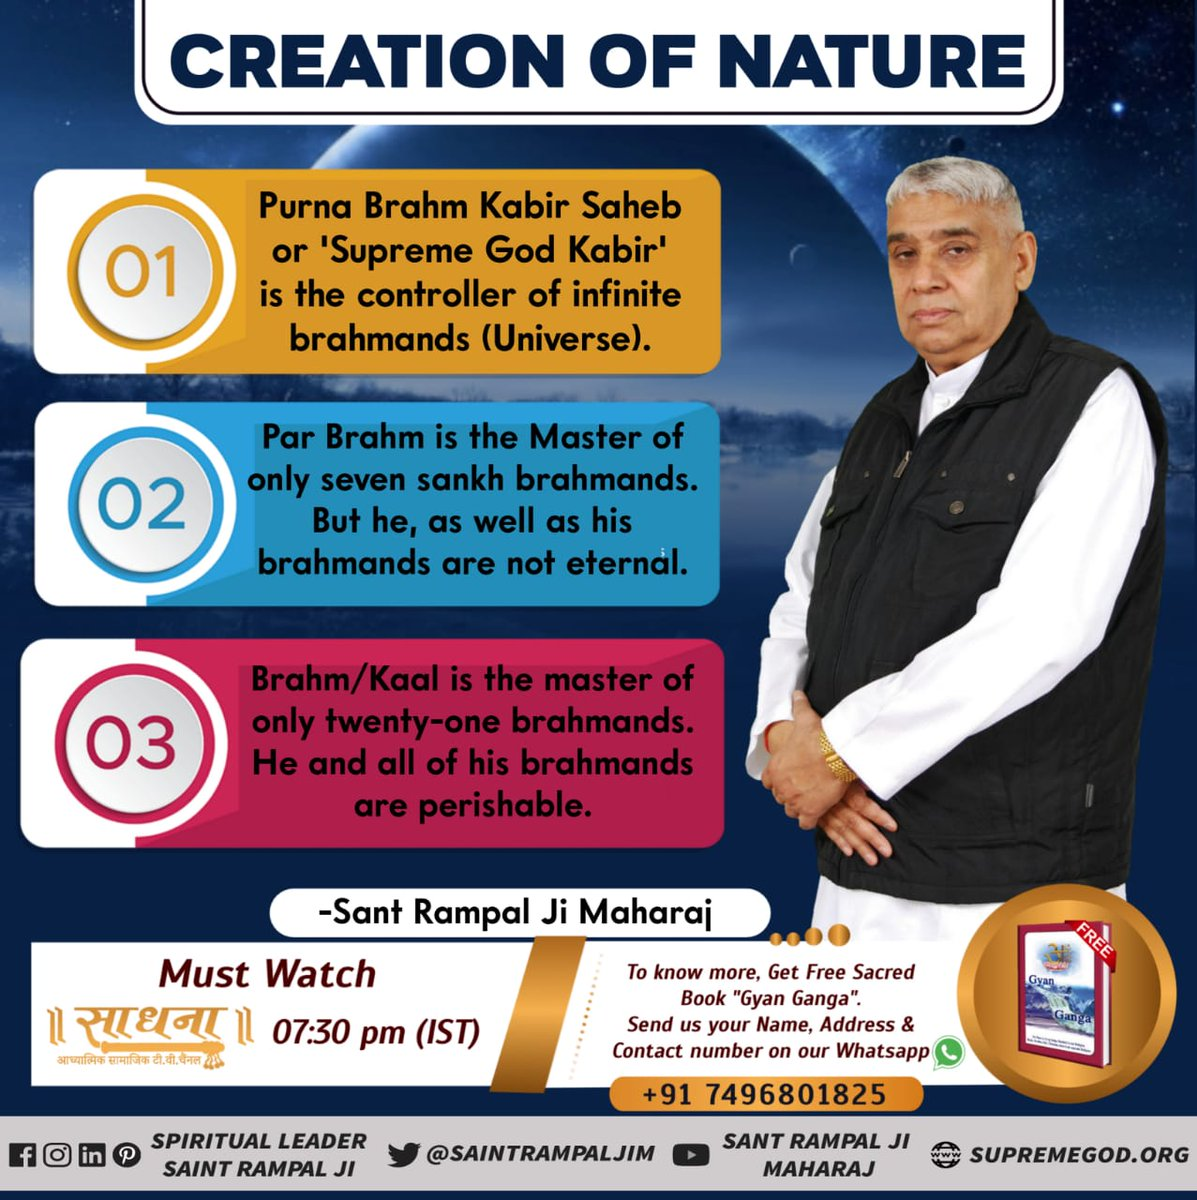 #WednesdayMotivation  Lord KABIR while Describing the glory of  Satlok has told that there is a place where the body  @SaintRampalJiM #GodMorningWednesday  Watch sadhana📺 on 7,30pm